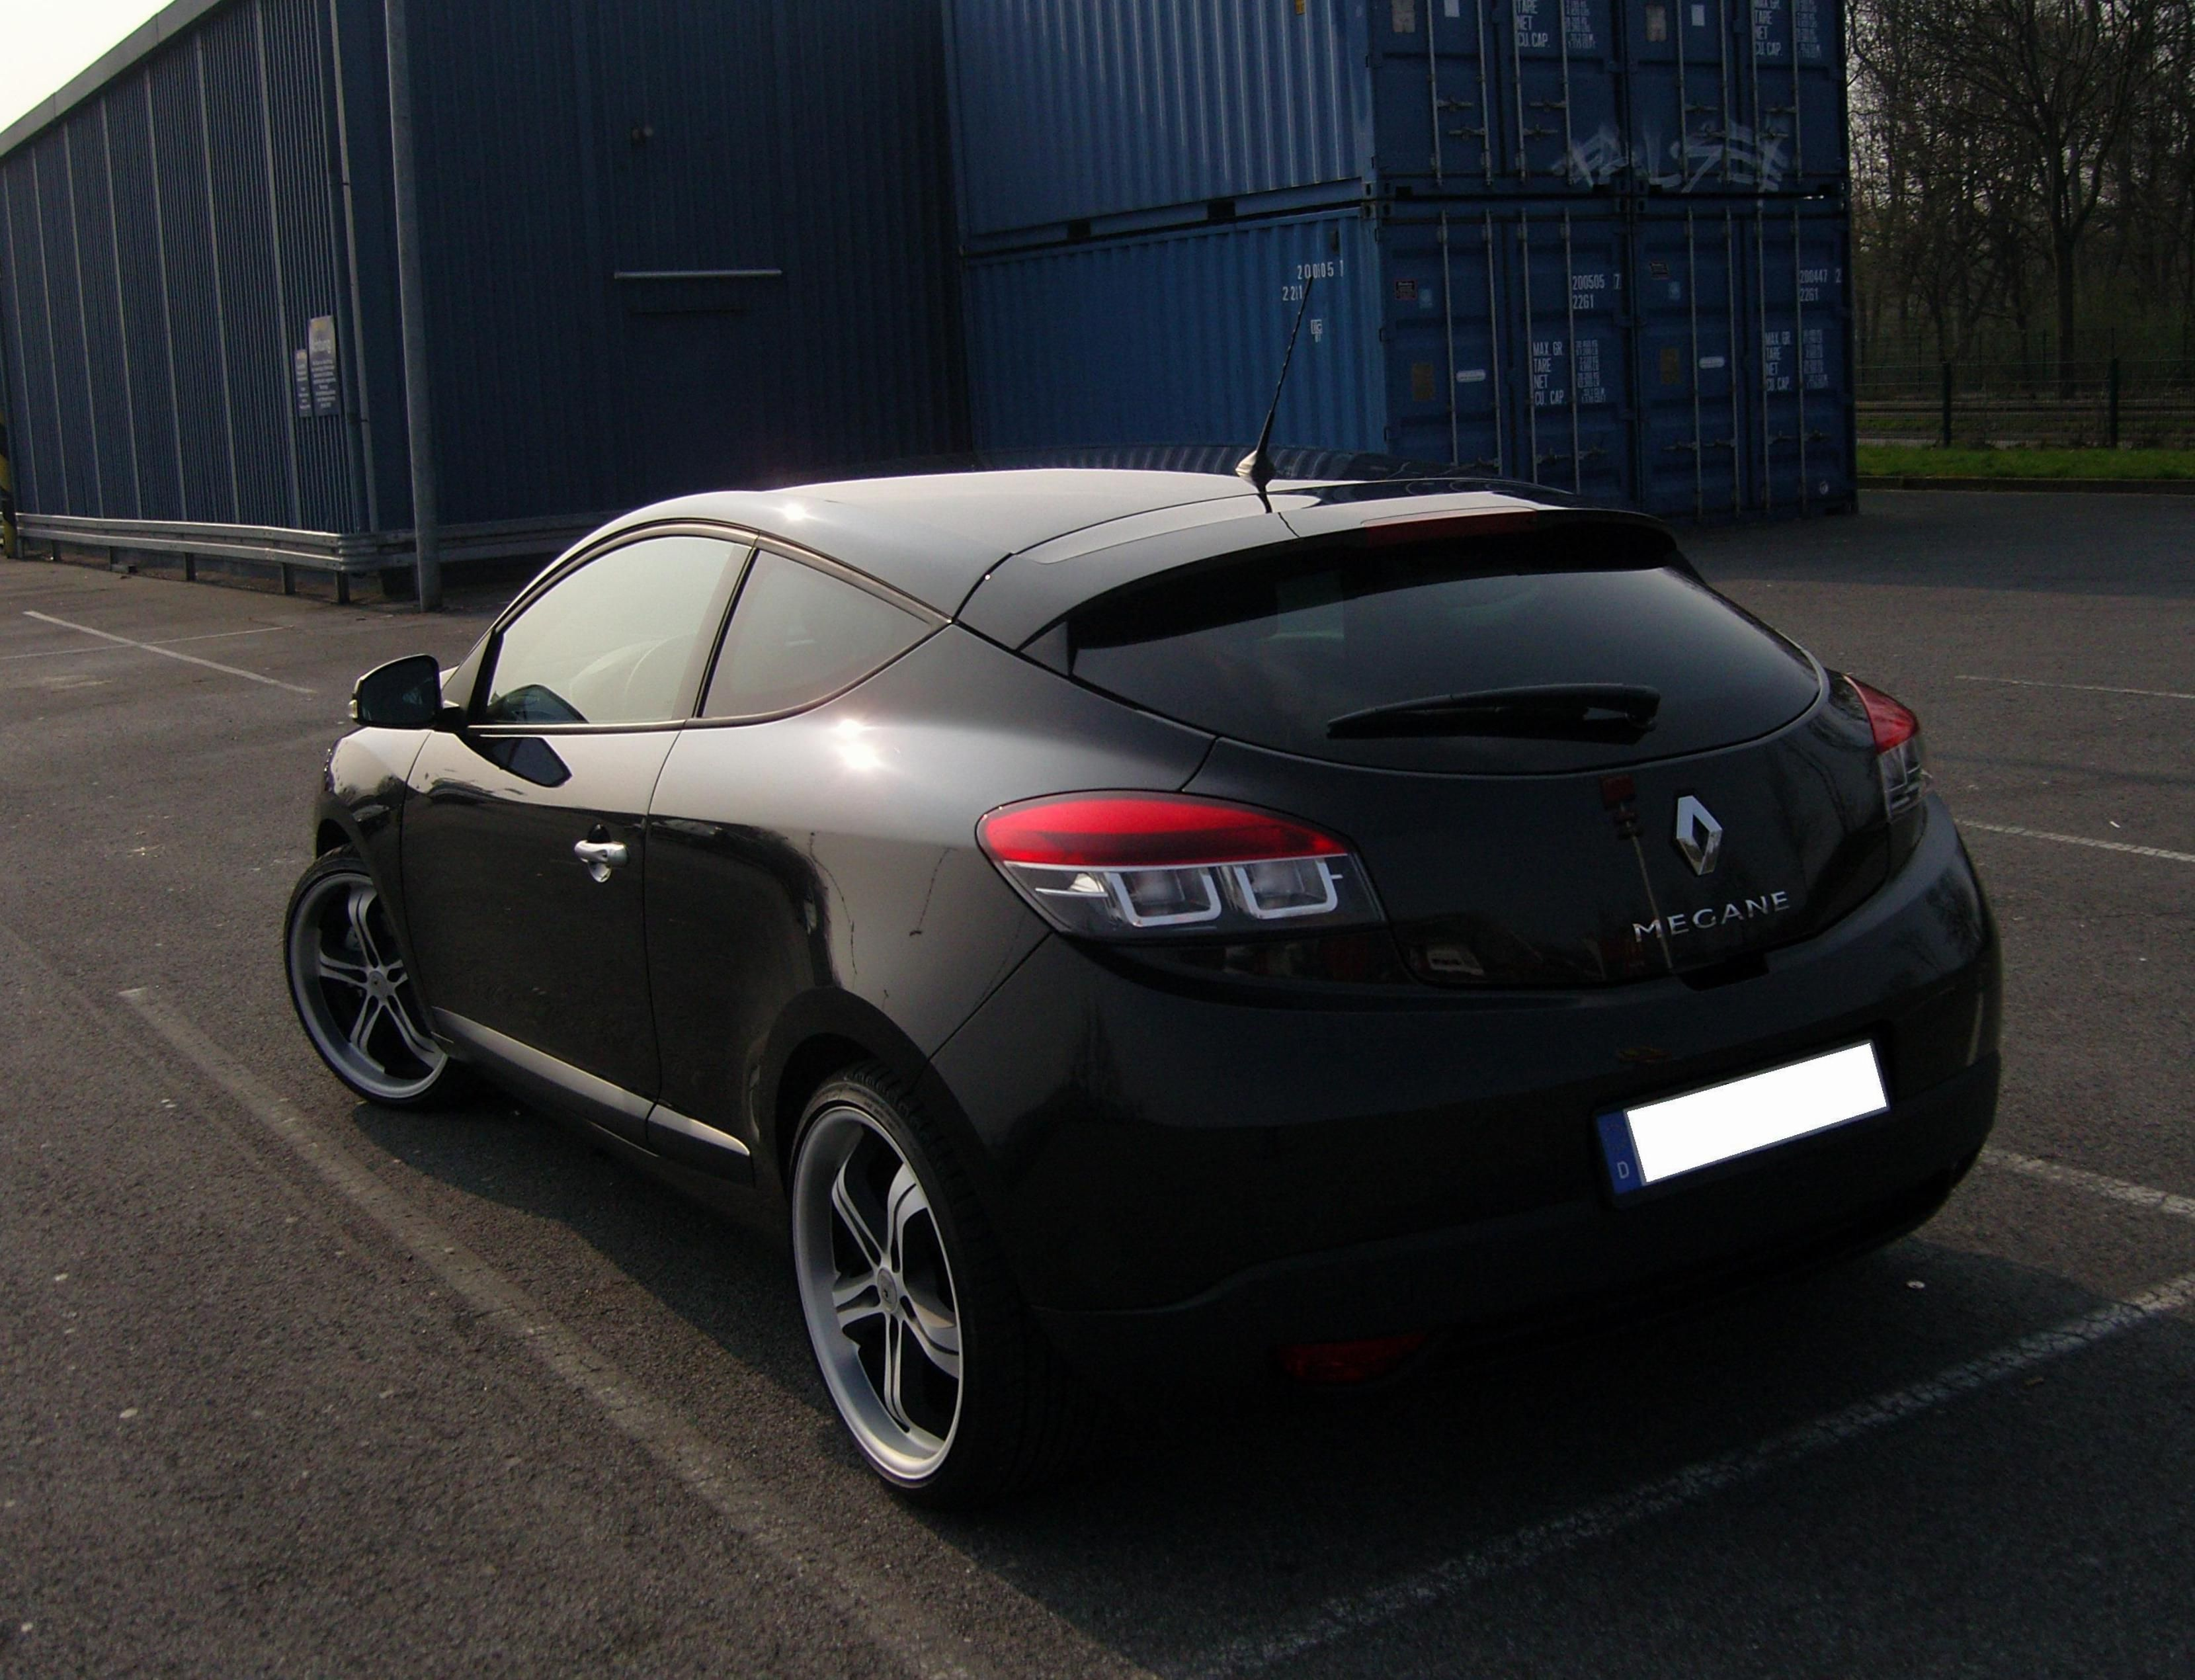 Renault Megane Coupe Photos And Specs. Photo: Renault Megane Coupe Used And  21 Perfect Photos Of Renault Megane Coupe